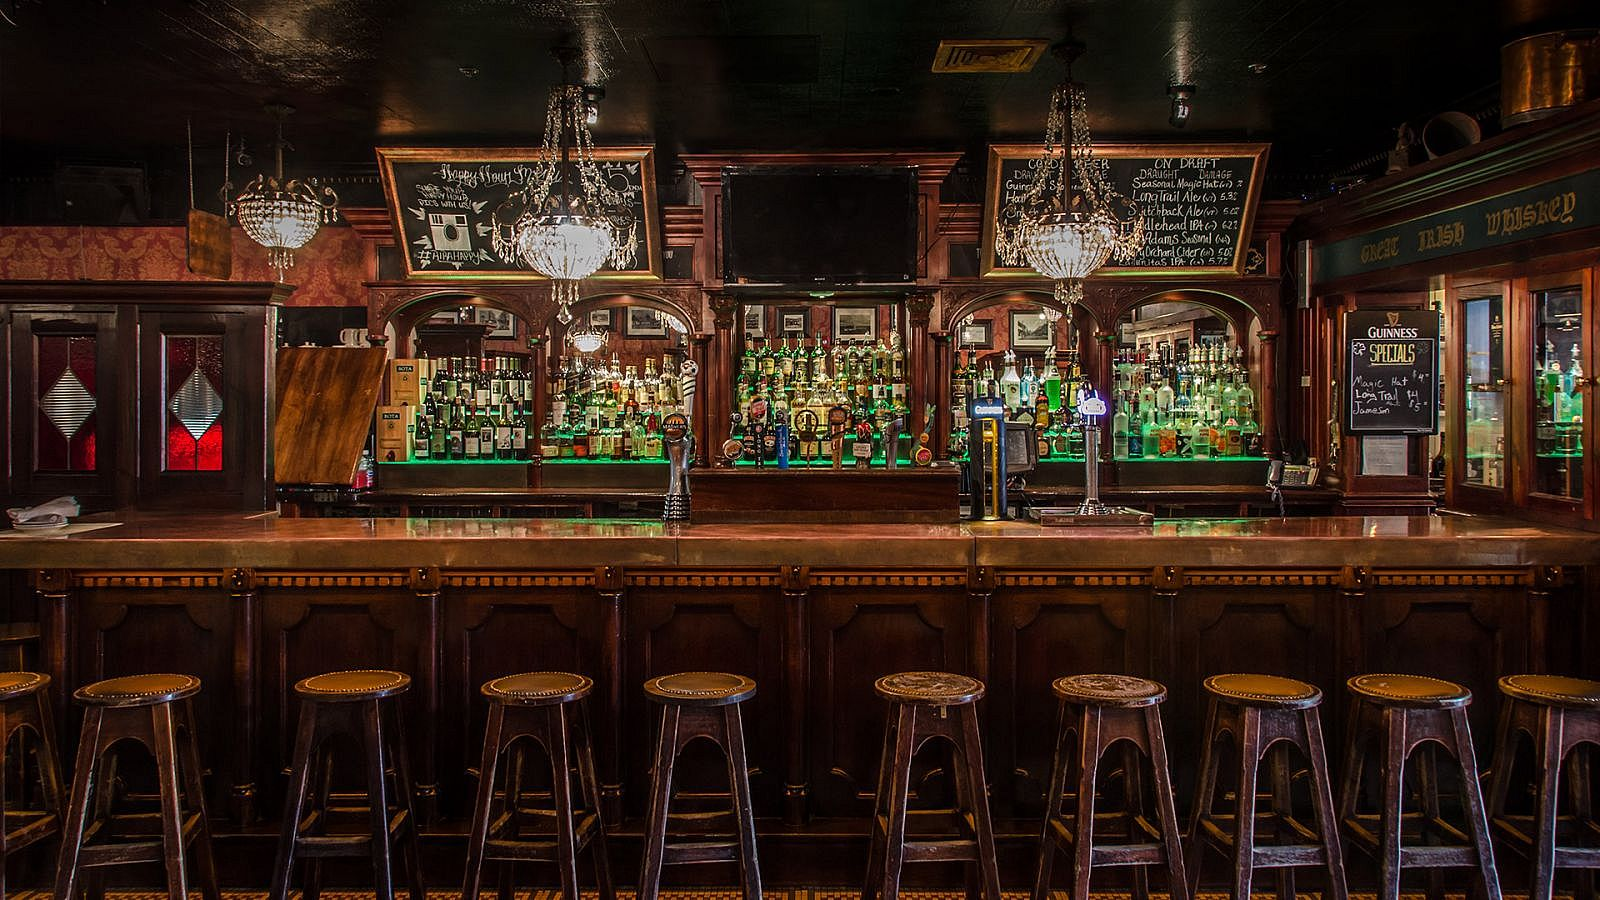 Home R R Irish Pub Burlington HD Wallpapers Download Free Images Wallpaper [1000image.com]